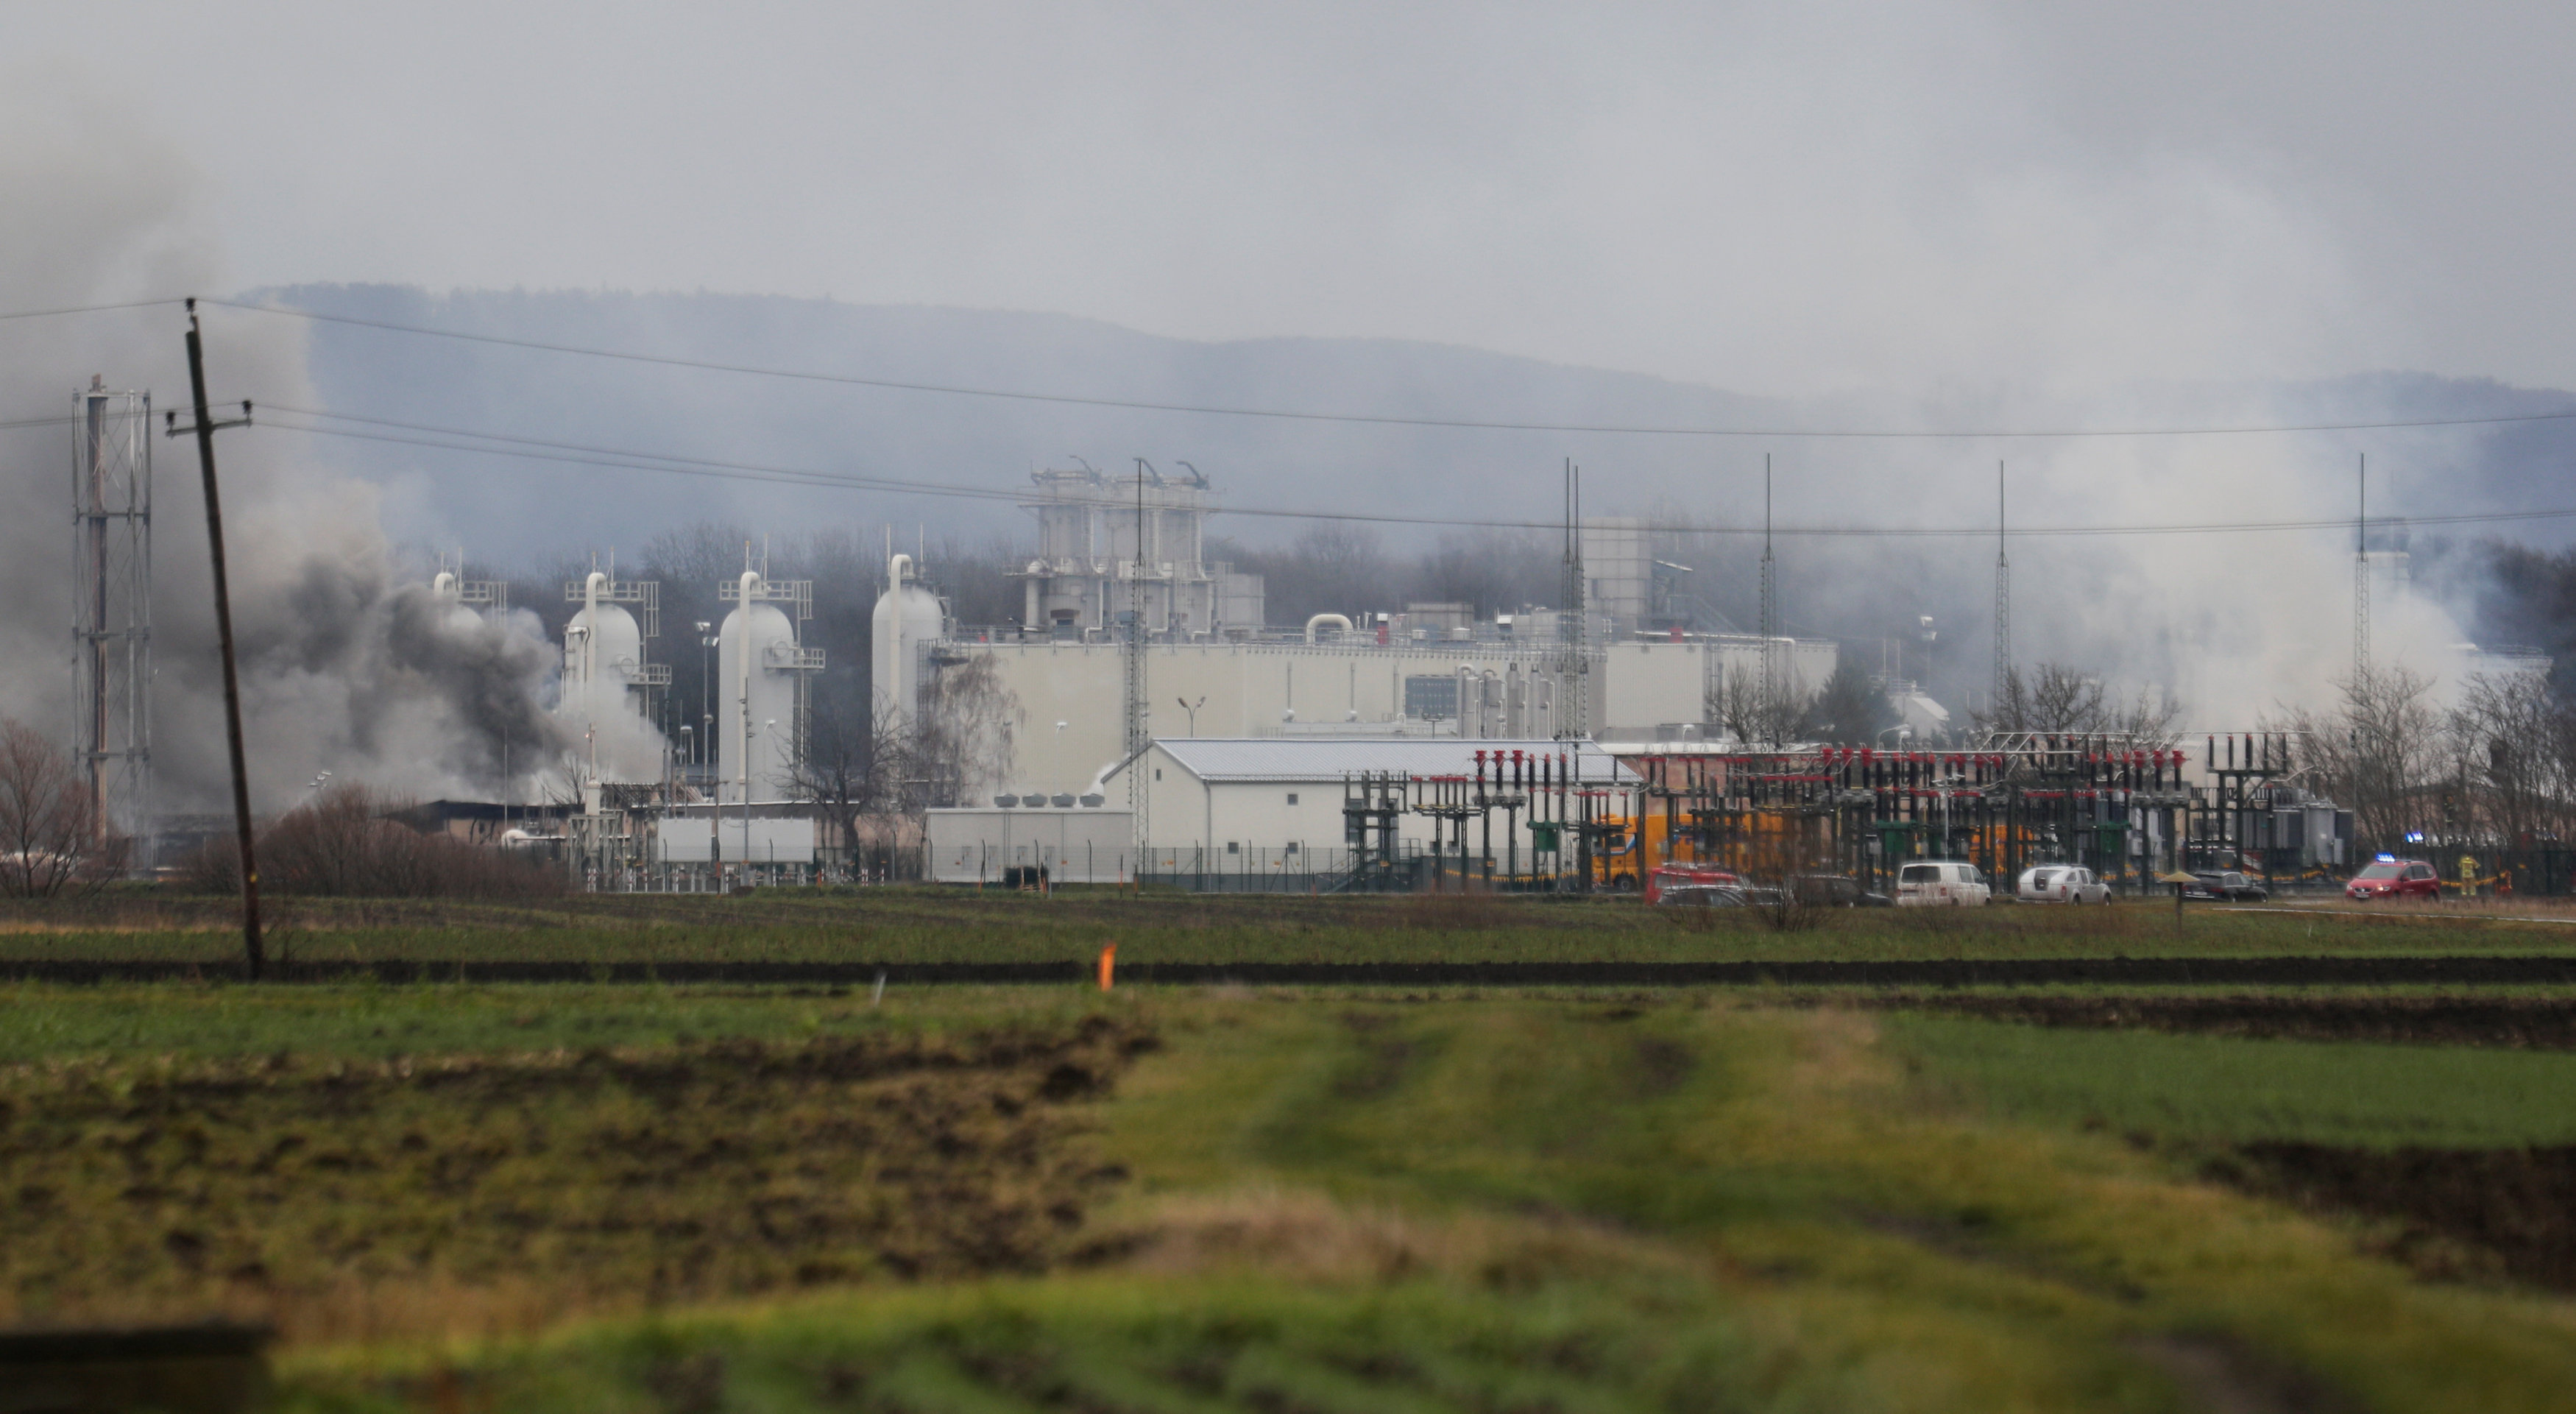 In pictures: One dead in explosion at Austria's main gas hub